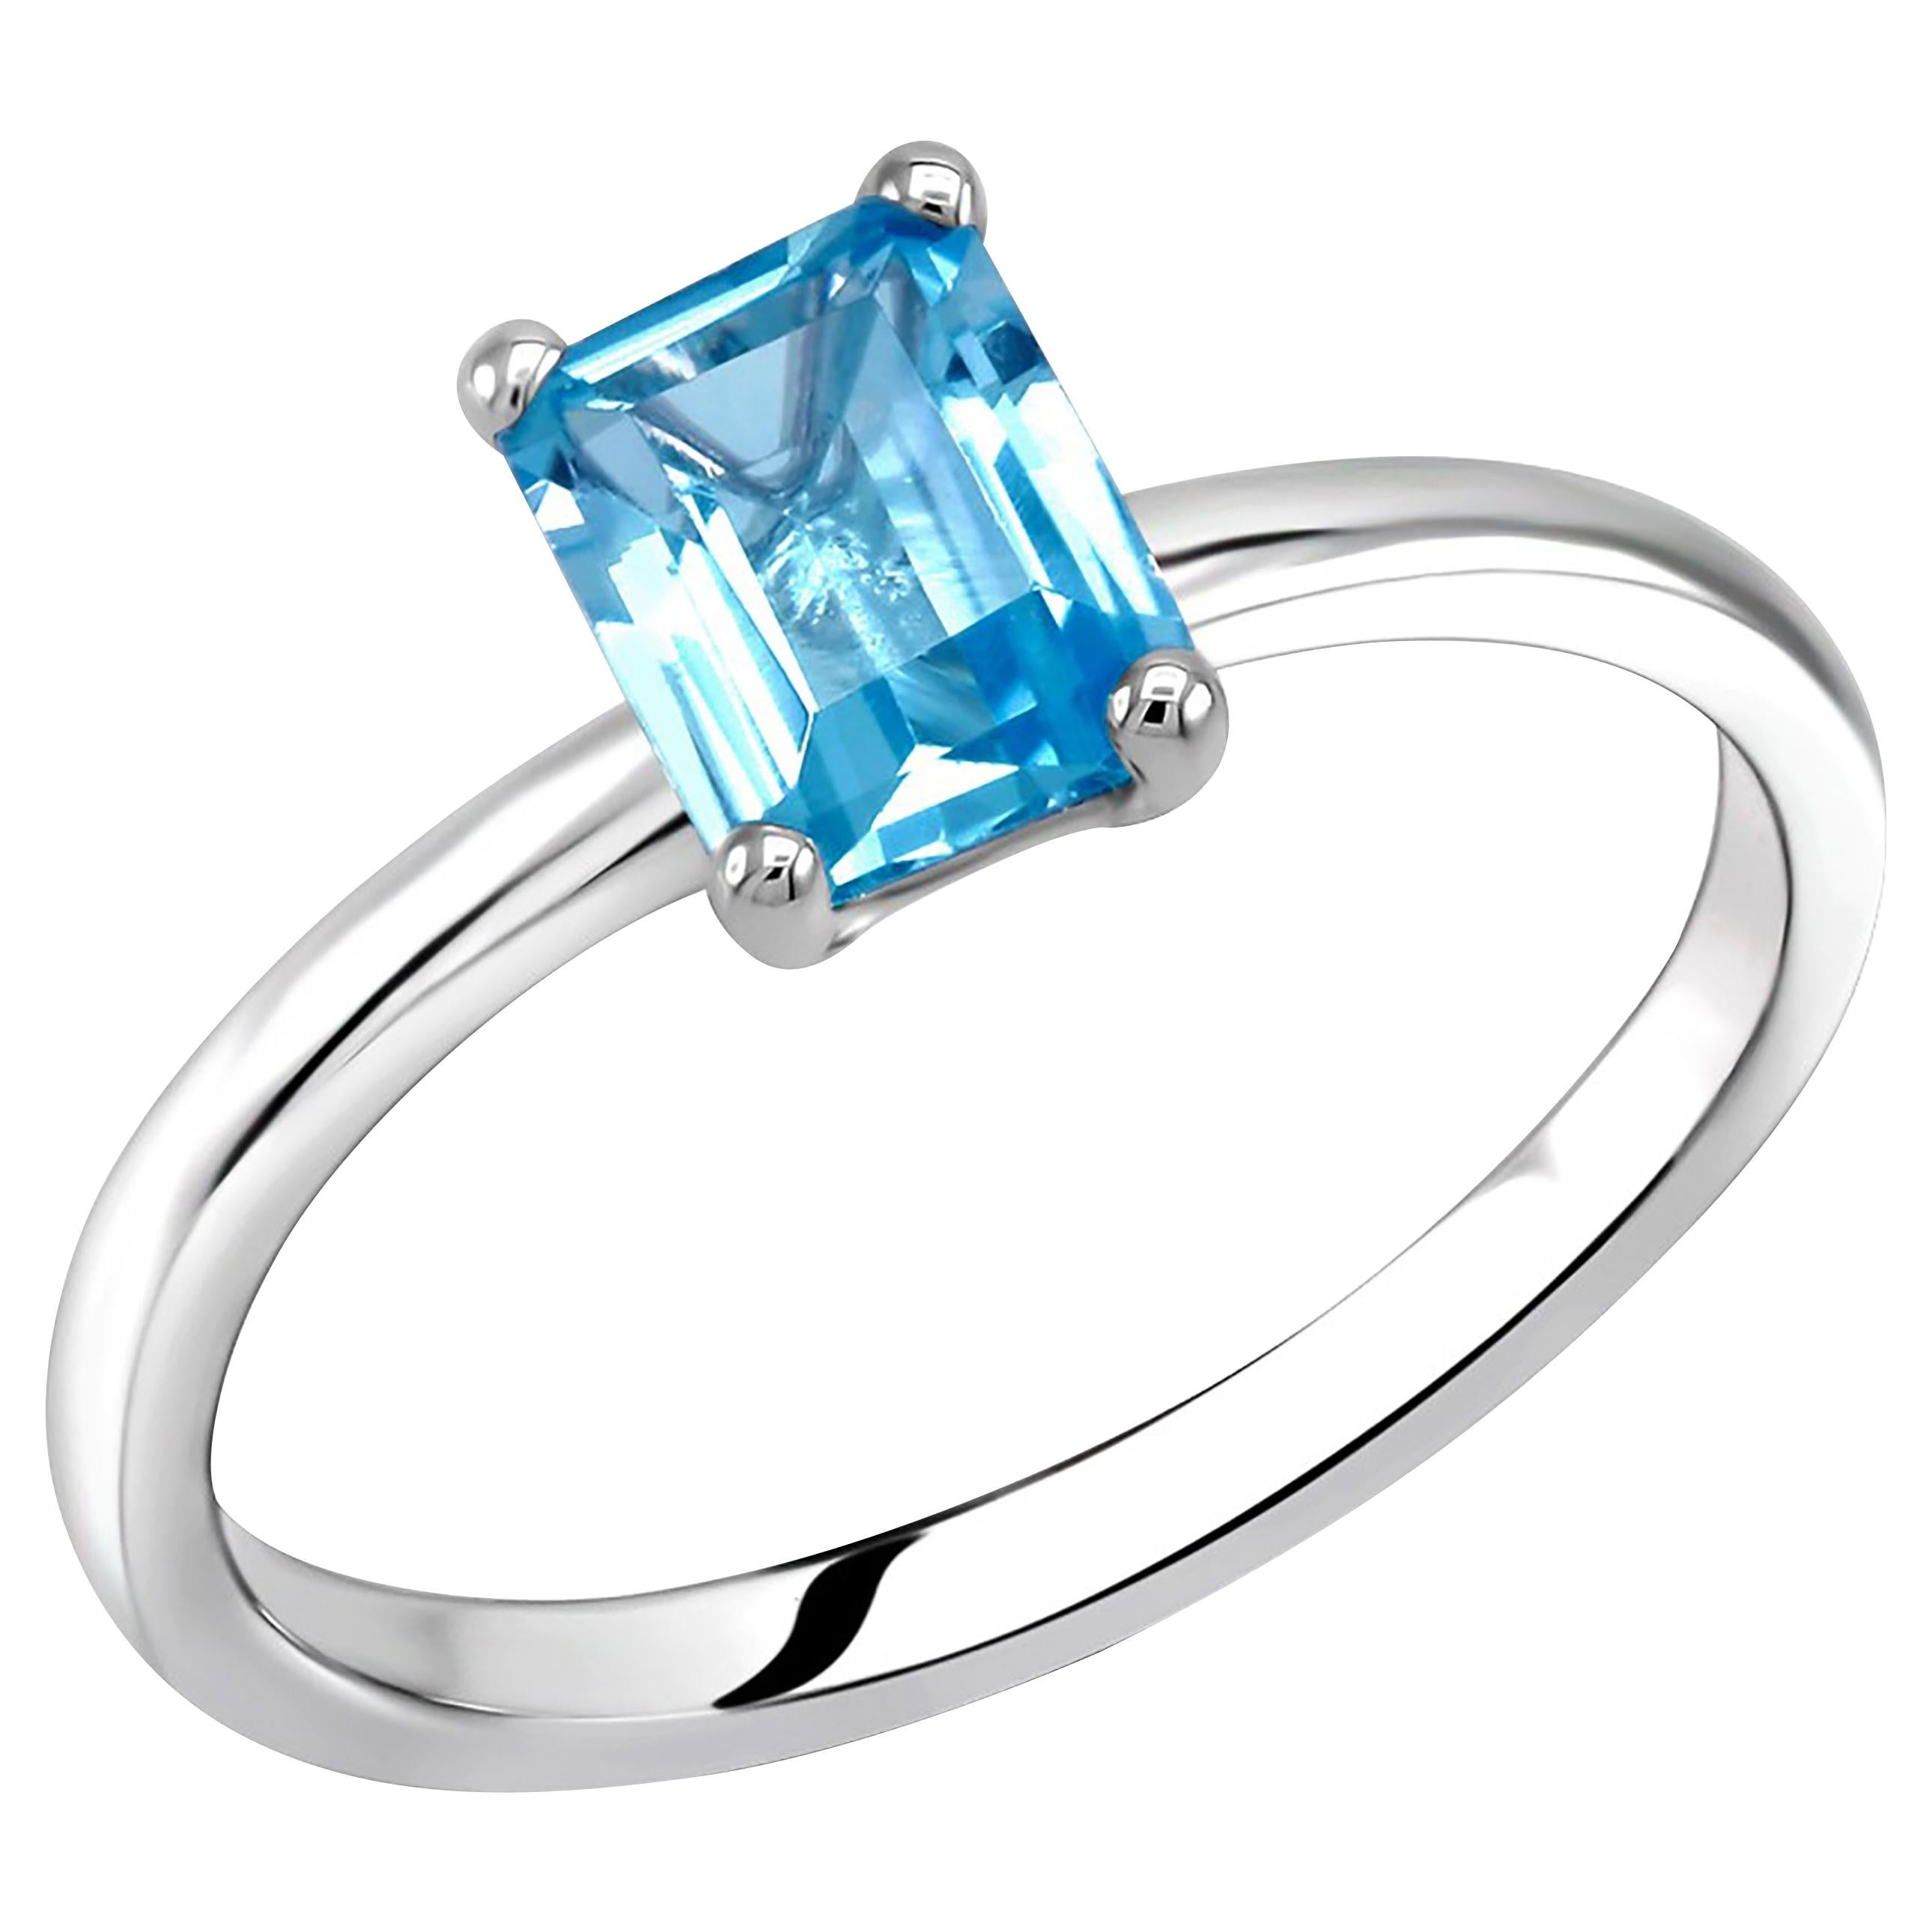 Emerald Cut Blue Topaz Solitaire Sterling Silver Ring